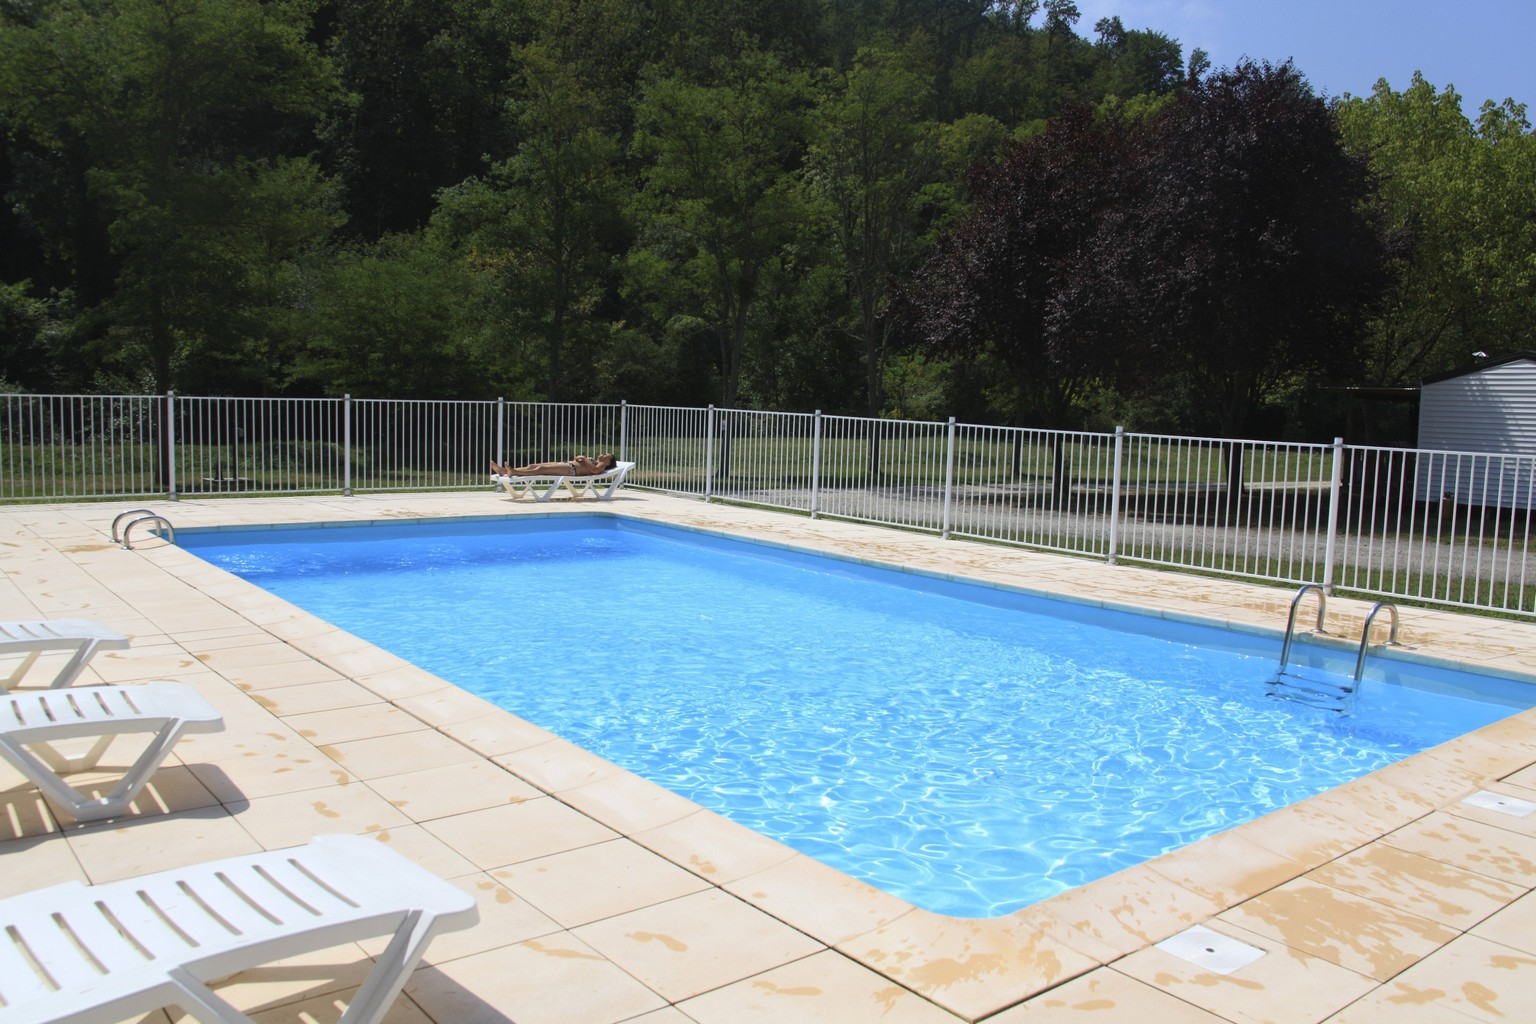 Cloture piscine pas cher for Piscine demontable pas cher